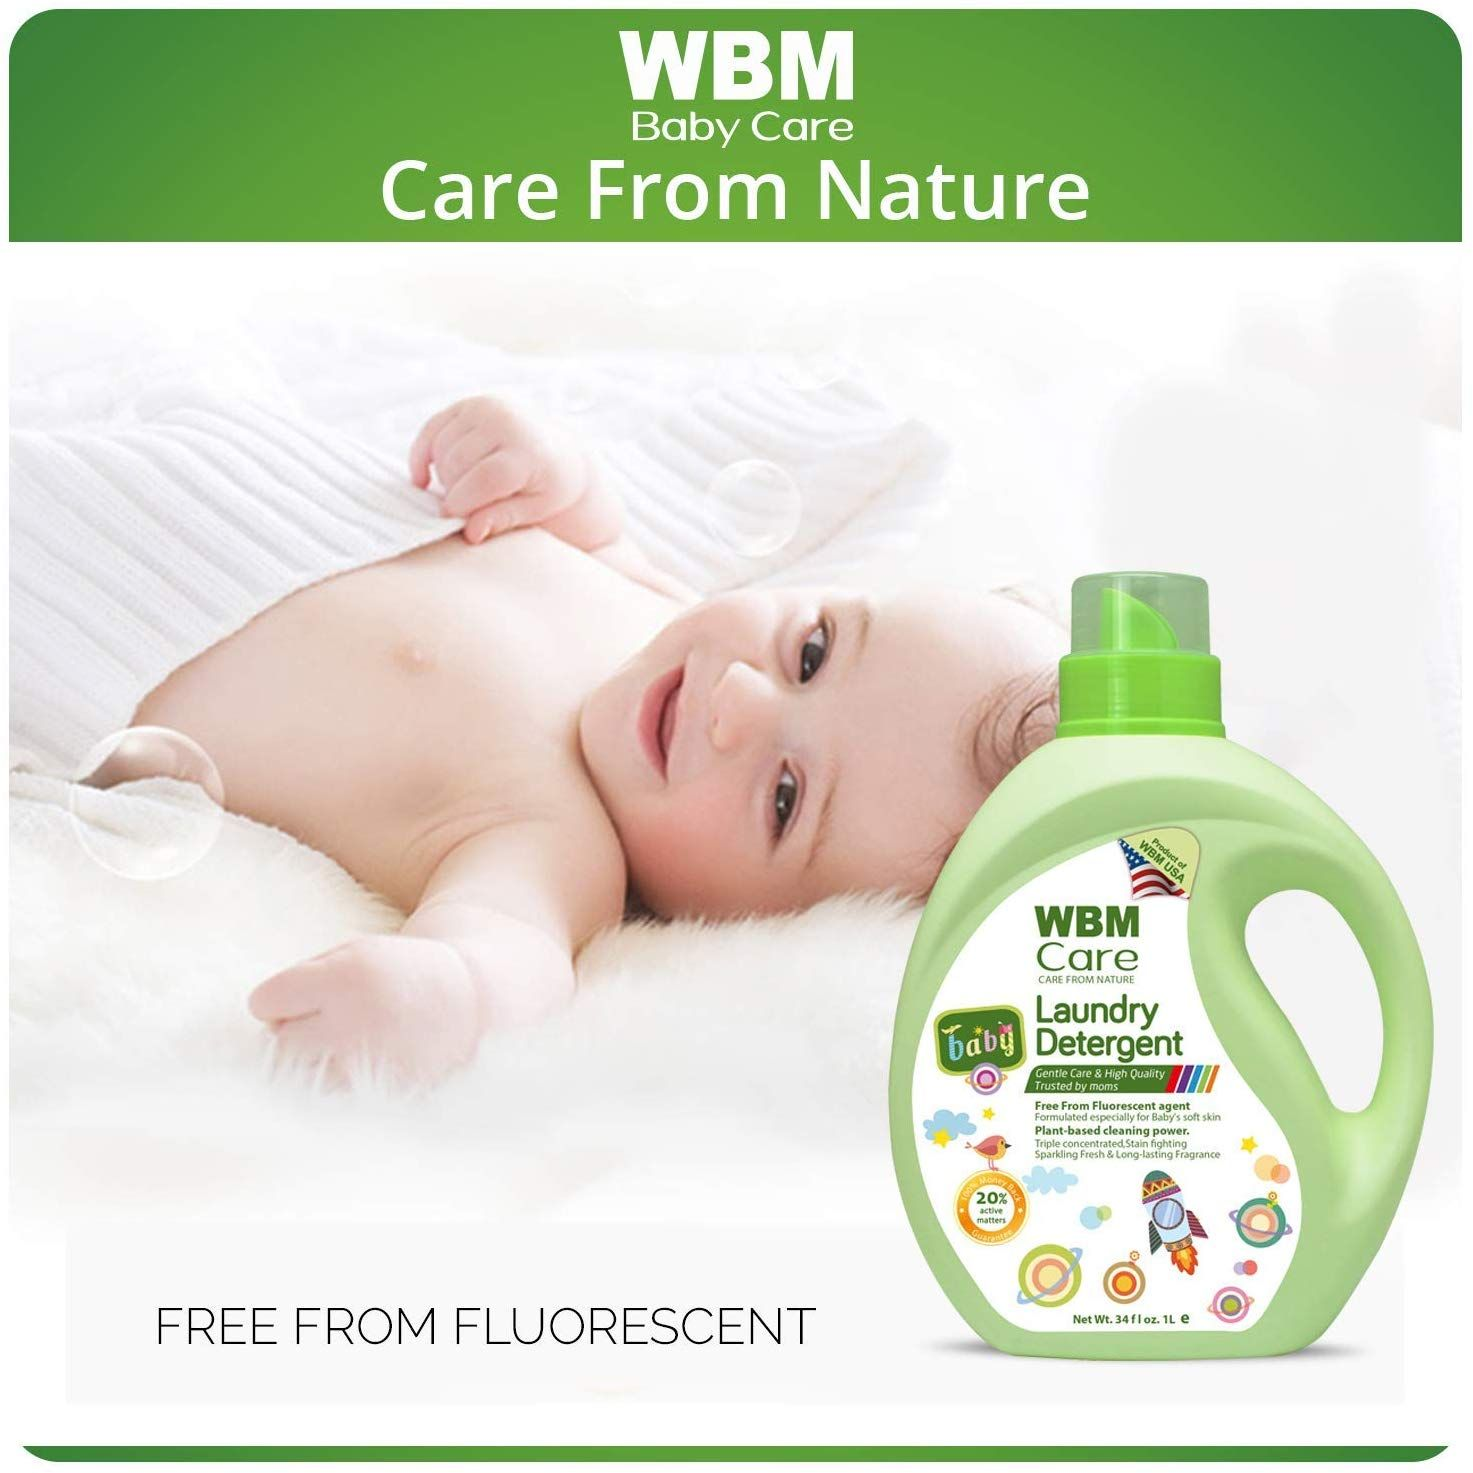 Worried About Your Baby S Laundry Detergent Wbm Care Baby